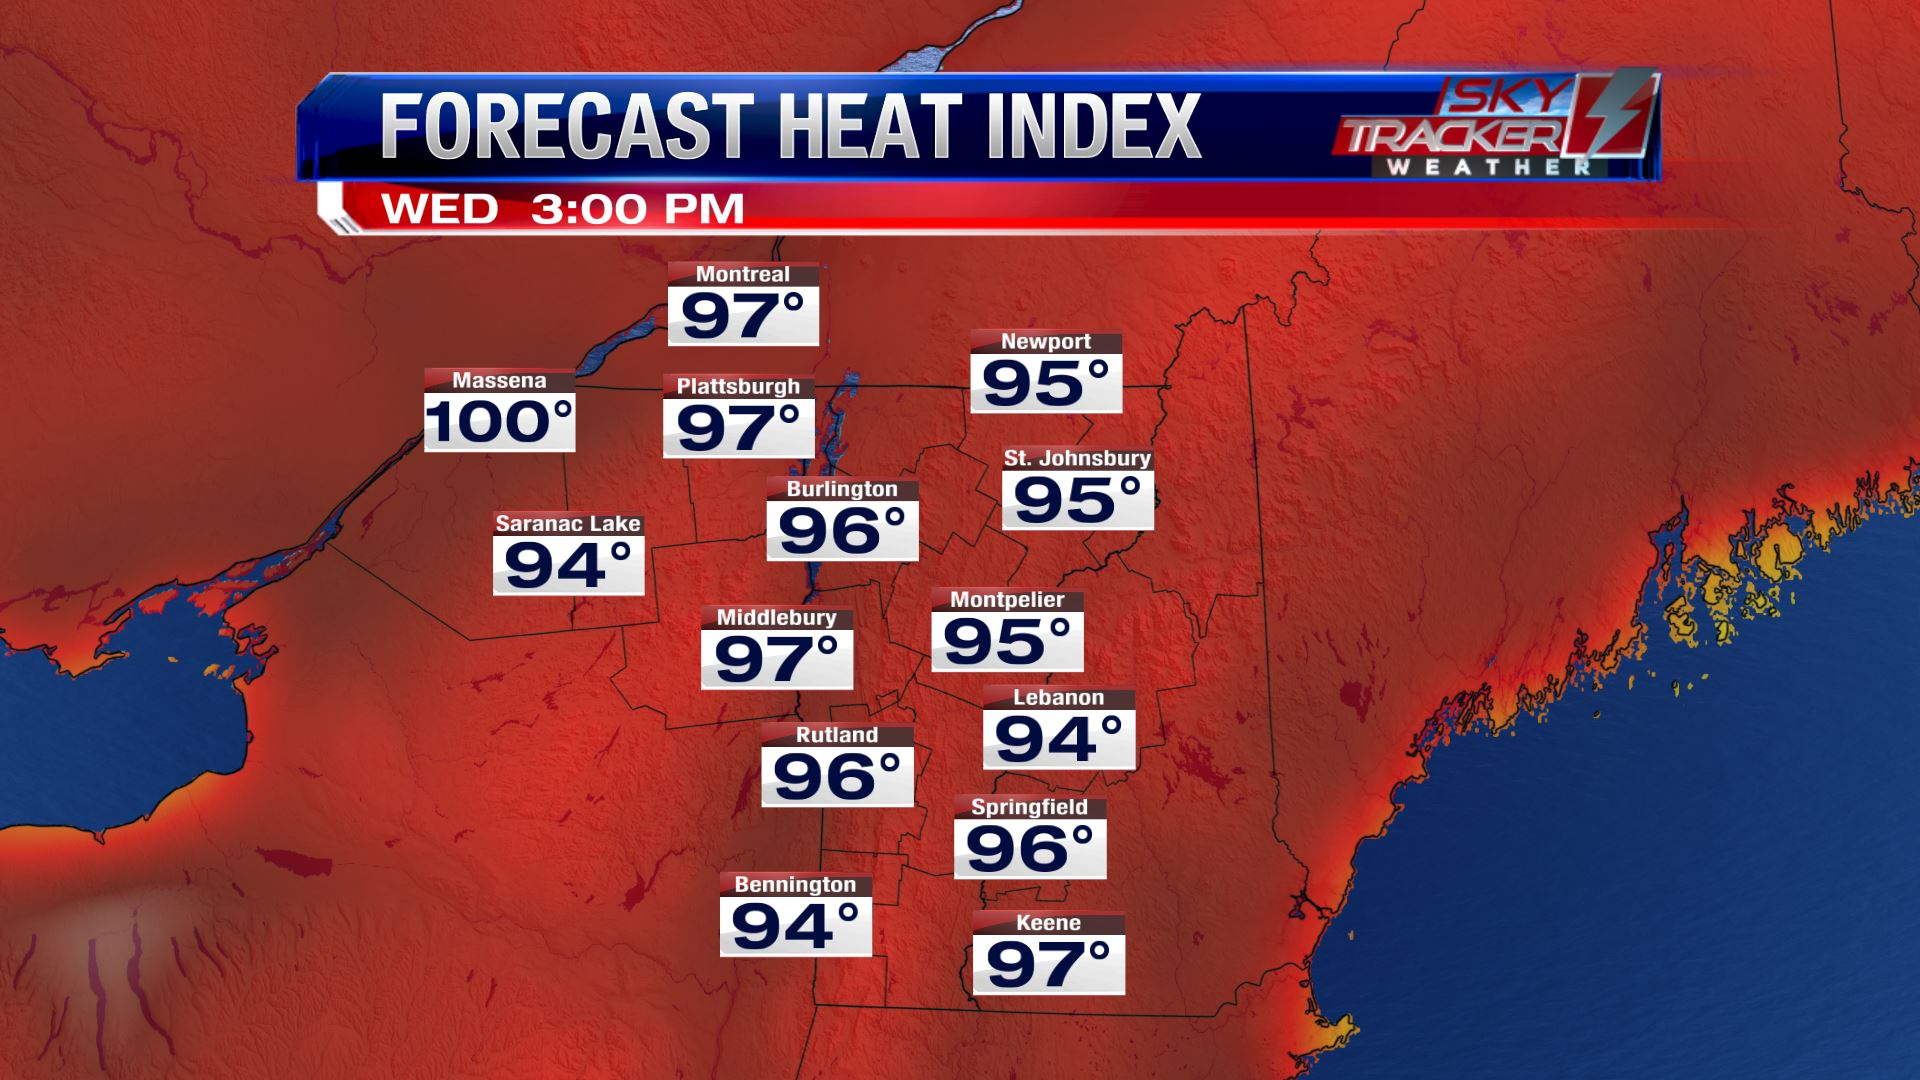 HEAT INDEX FORECAST_1530646842463.JPG.jpg